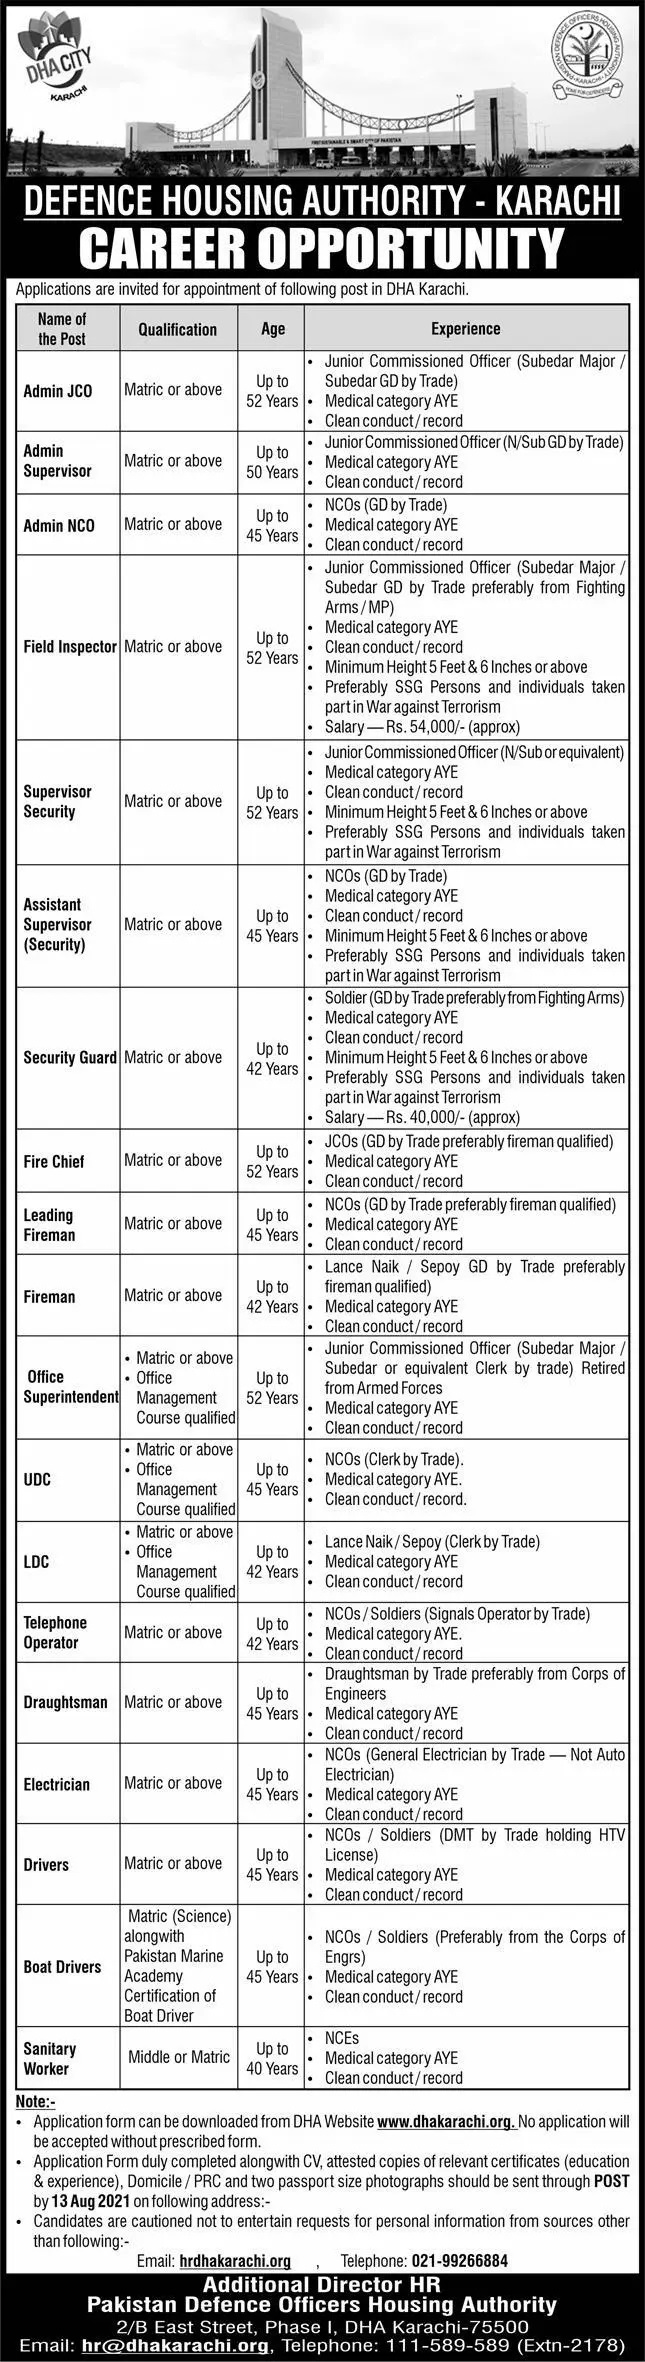 Government Jobs in Karachi 2021 for Matric Karachi Defence Housing Authority DHA